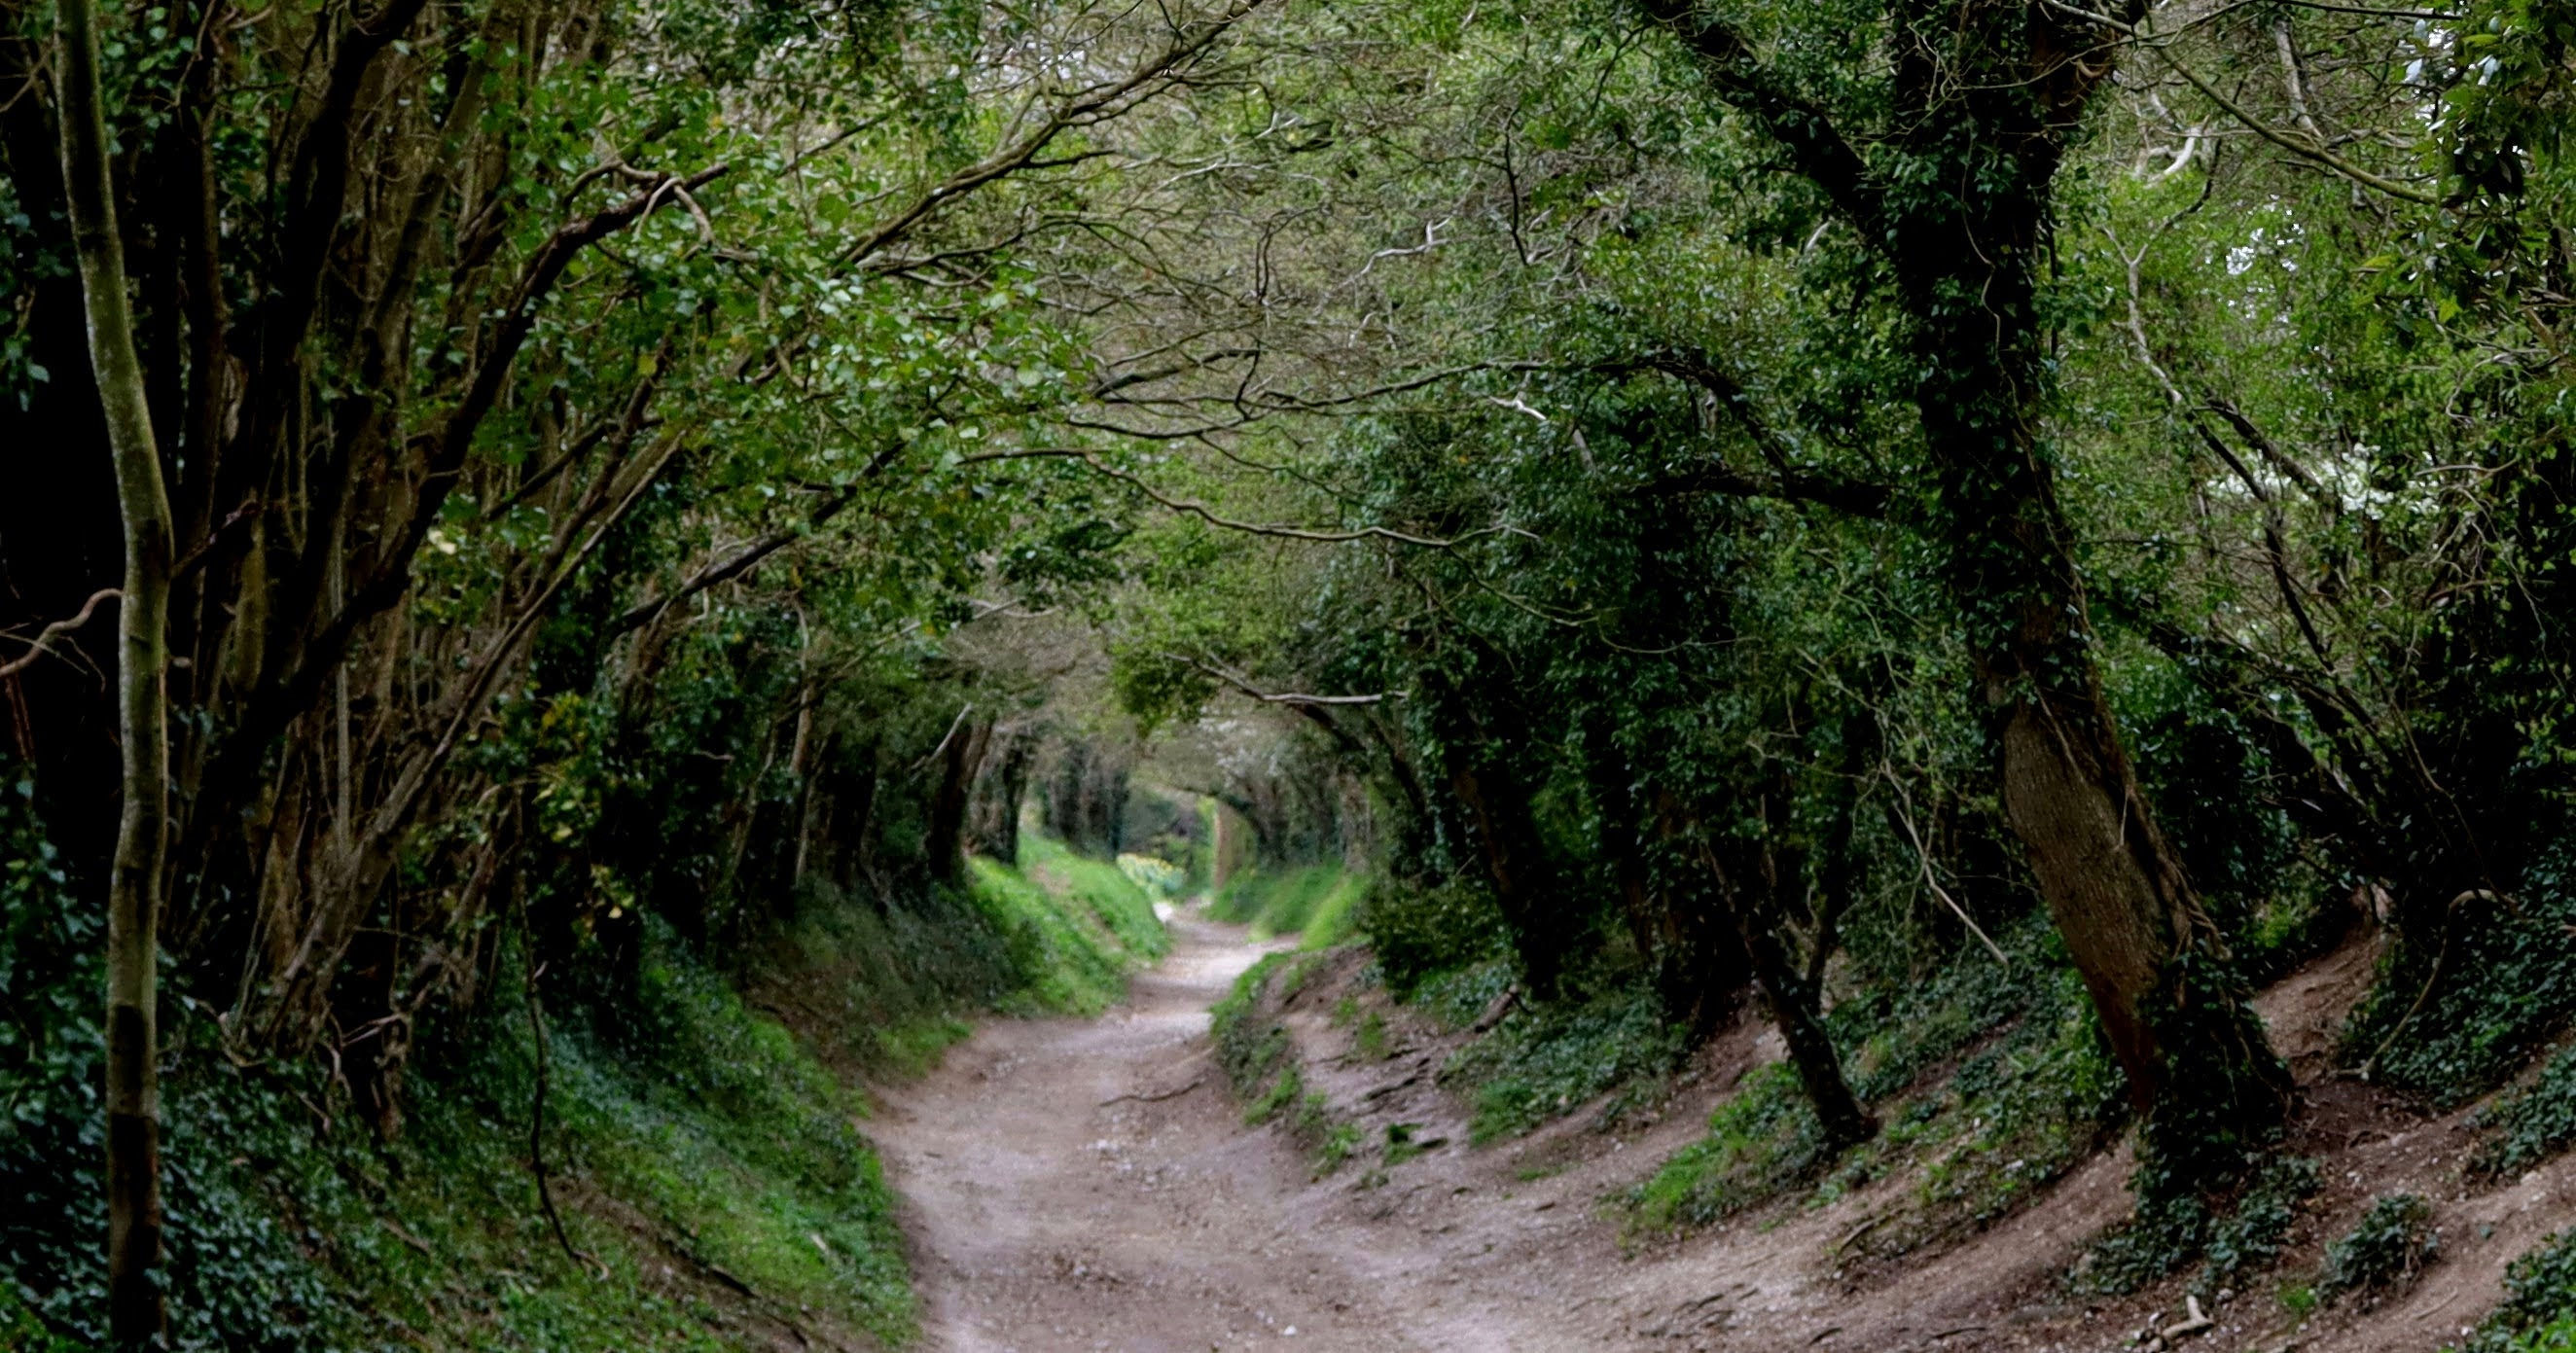 A tunnel of trees that line the path to Halnaker Mill.